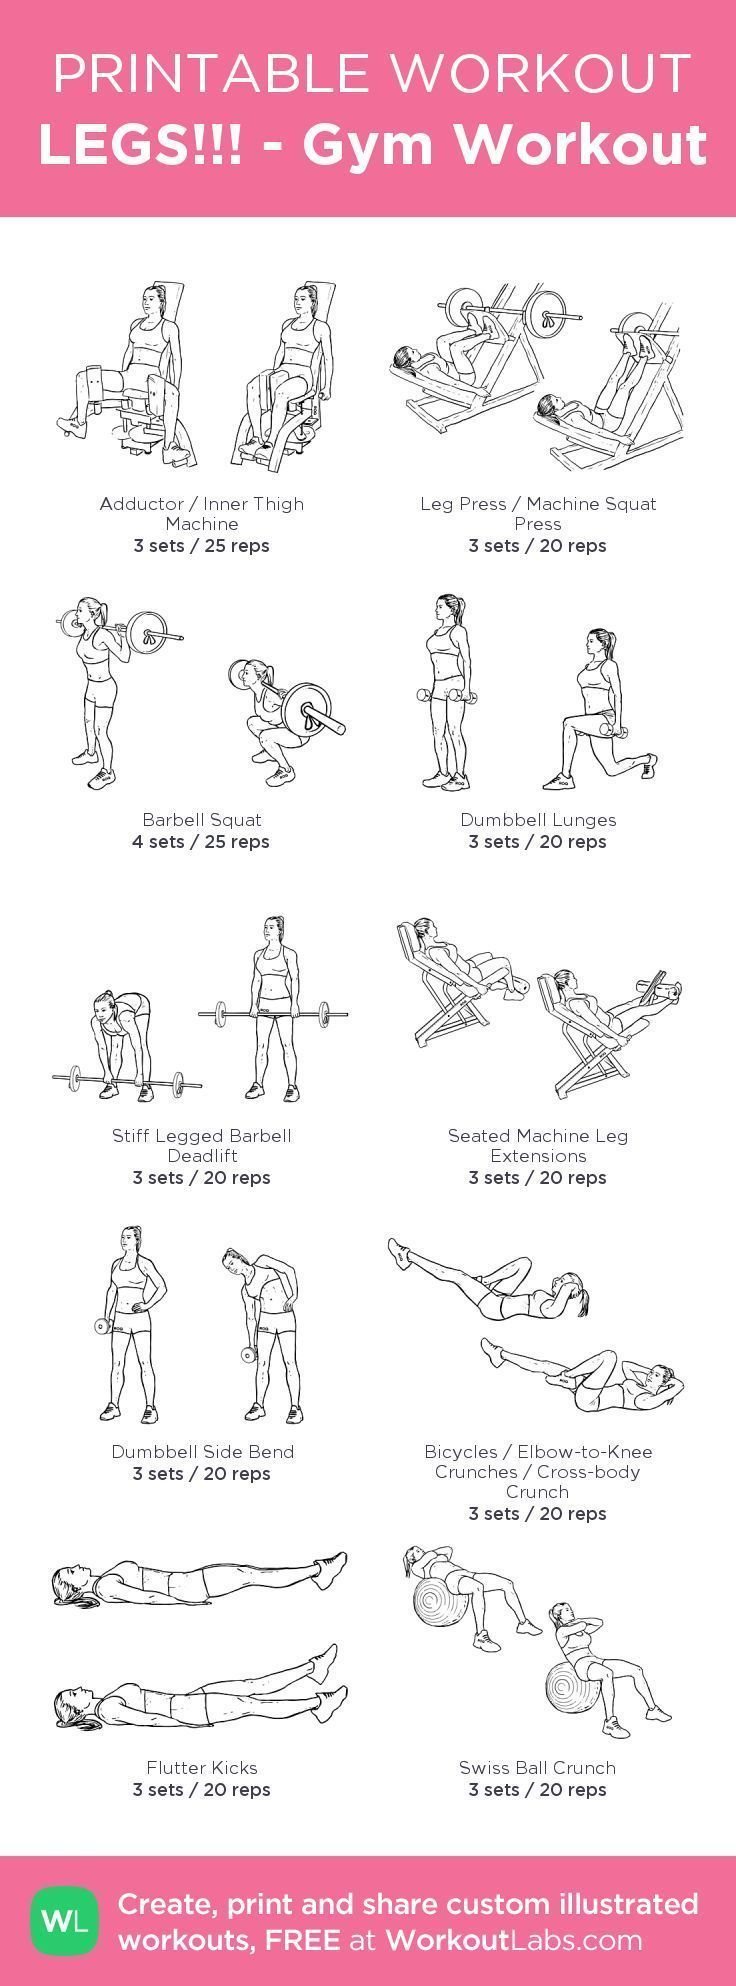 LEGS!!! - Gym Workout – my custom workout created at  • Click through to download as printable PDF! #Gymworkouts